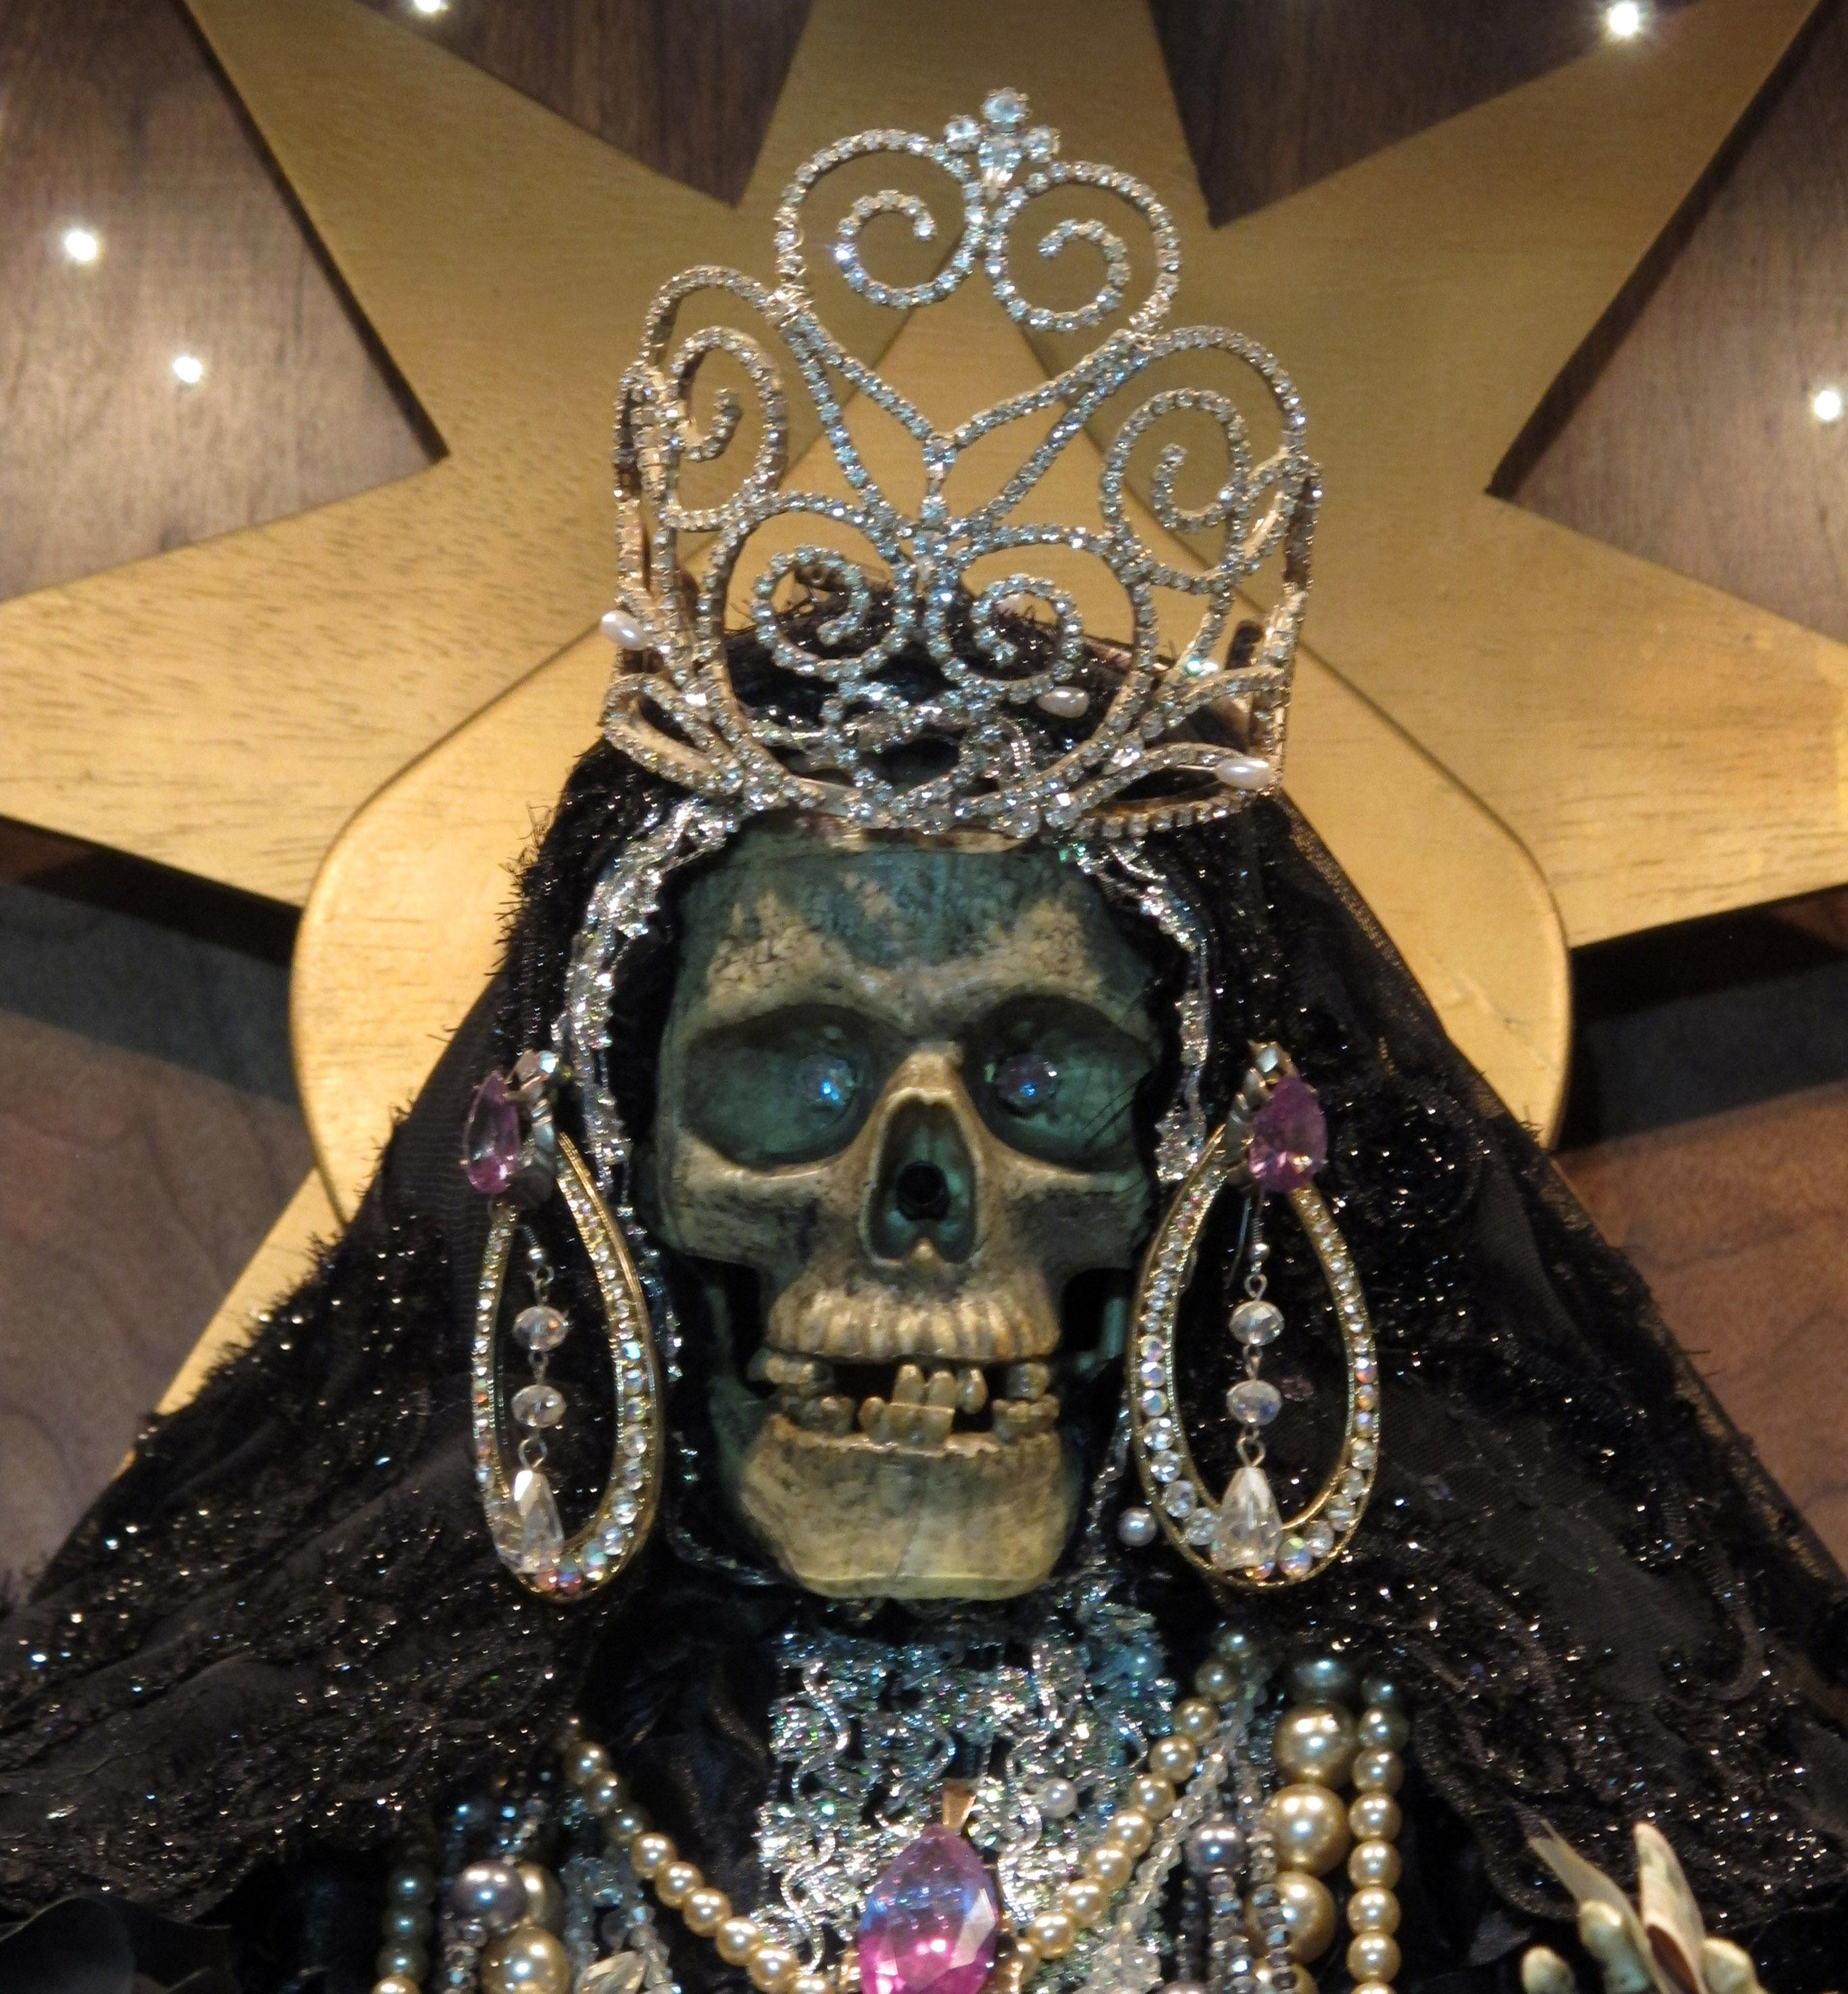 In this Feb. 12, 2013 photo, a statue of La Sante Muerte from an altar run by Arely Vazquez Gonzalez, a Mexican immigrant and transgender woman, is shown at inside a Queens, NY apartment. La Santa Muerte, an underworld saint most recently associated with the violent drug trade in Mexico, now is spreading throughout the U.S. among a new group of followers ranging from immigrant small business owners to artists and gay activists. In addition to showing up at drug crime scenes, the once-underground icon has been spotted on passion candles in Richmond, Va. grocery stores. The folk saint's image can be seen inside New York City apartments, in Minneapolis religious shops and during art shows in Tucson, Ariz. (AP Photo/Russell Contreras)